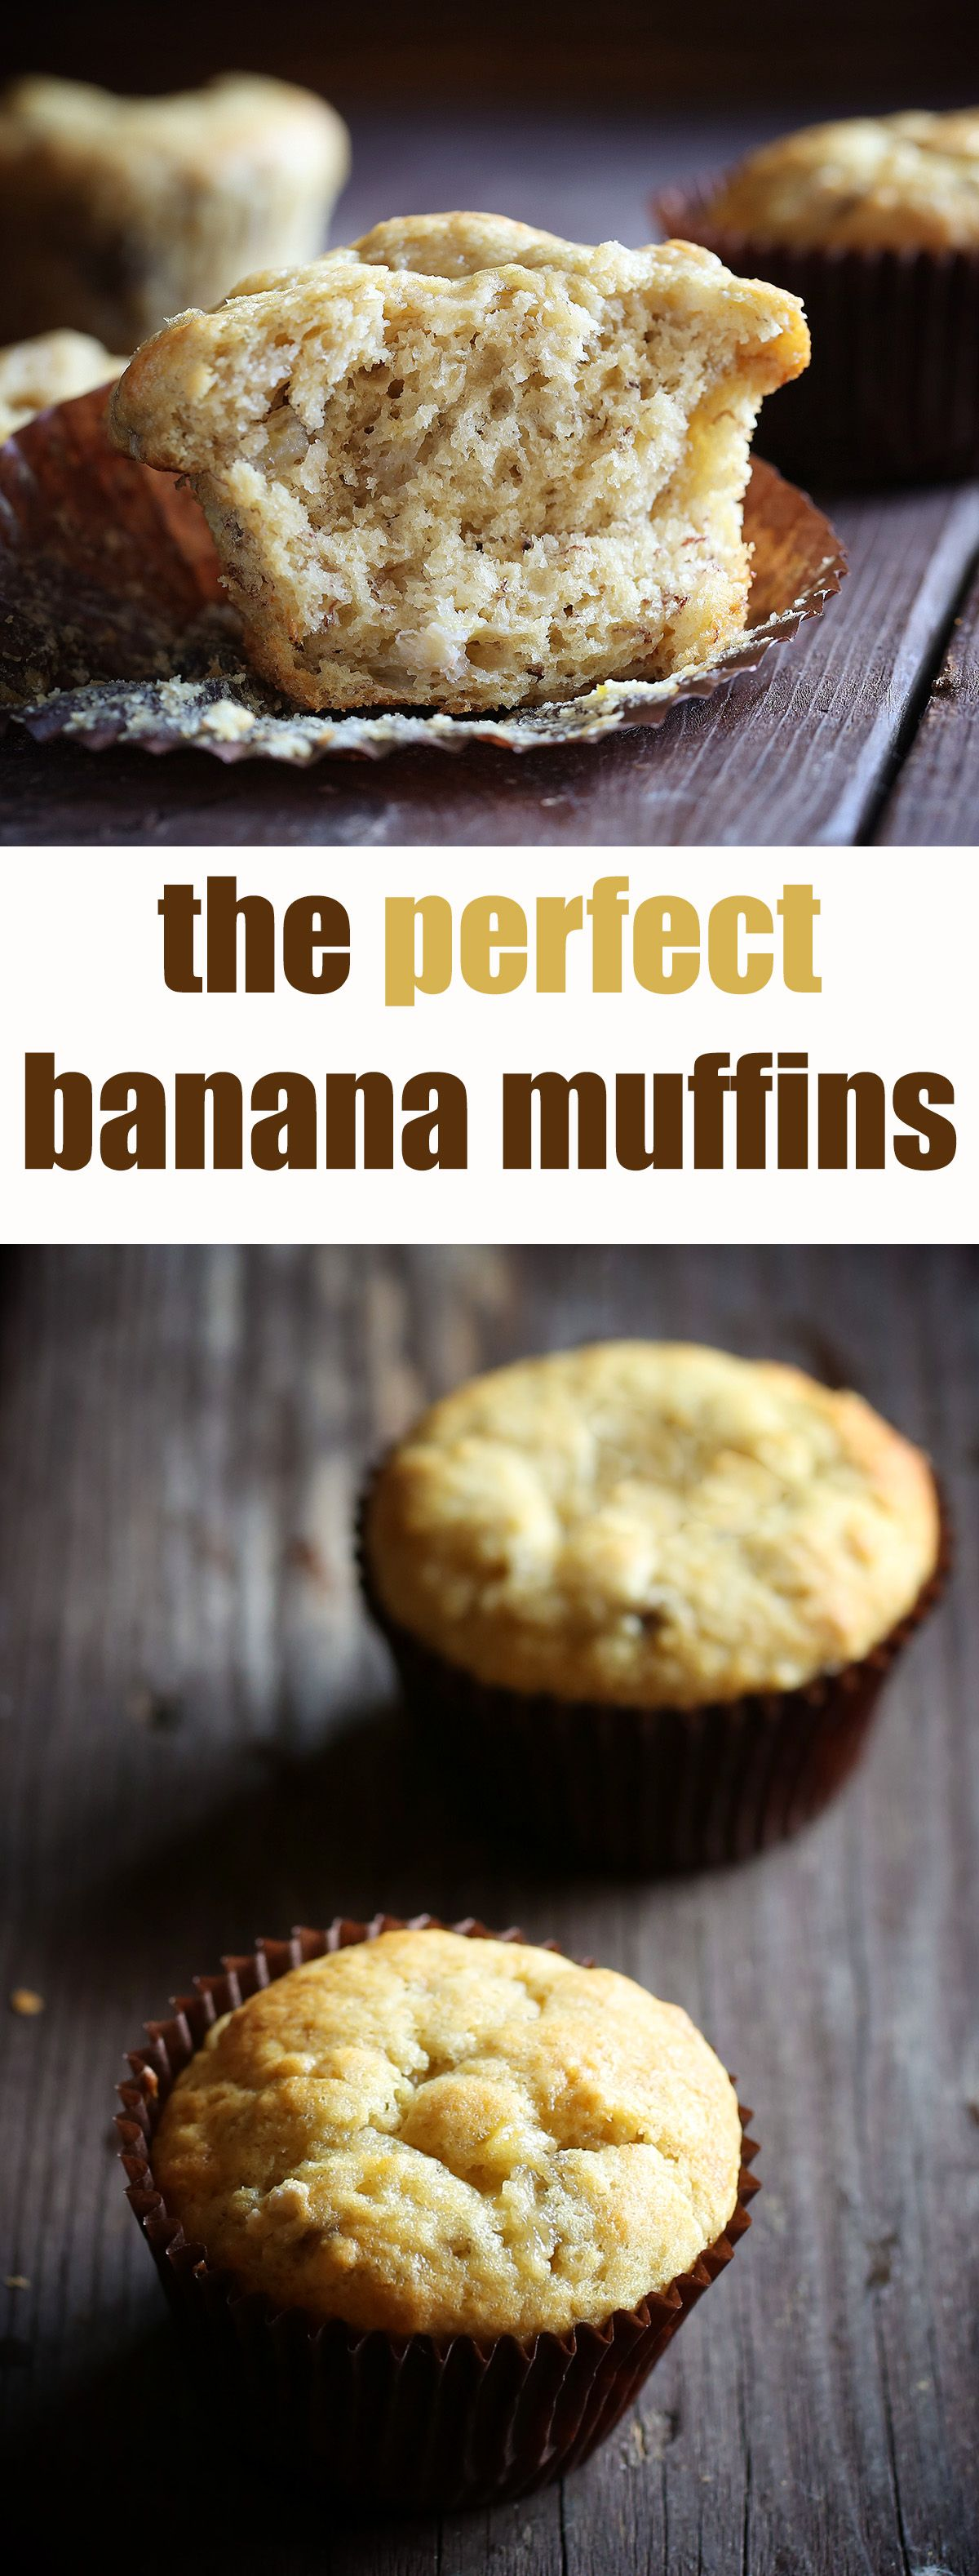 The most pure, organic, delicious flavor of banana makes this the BEST Banana Muffin I have ever had!